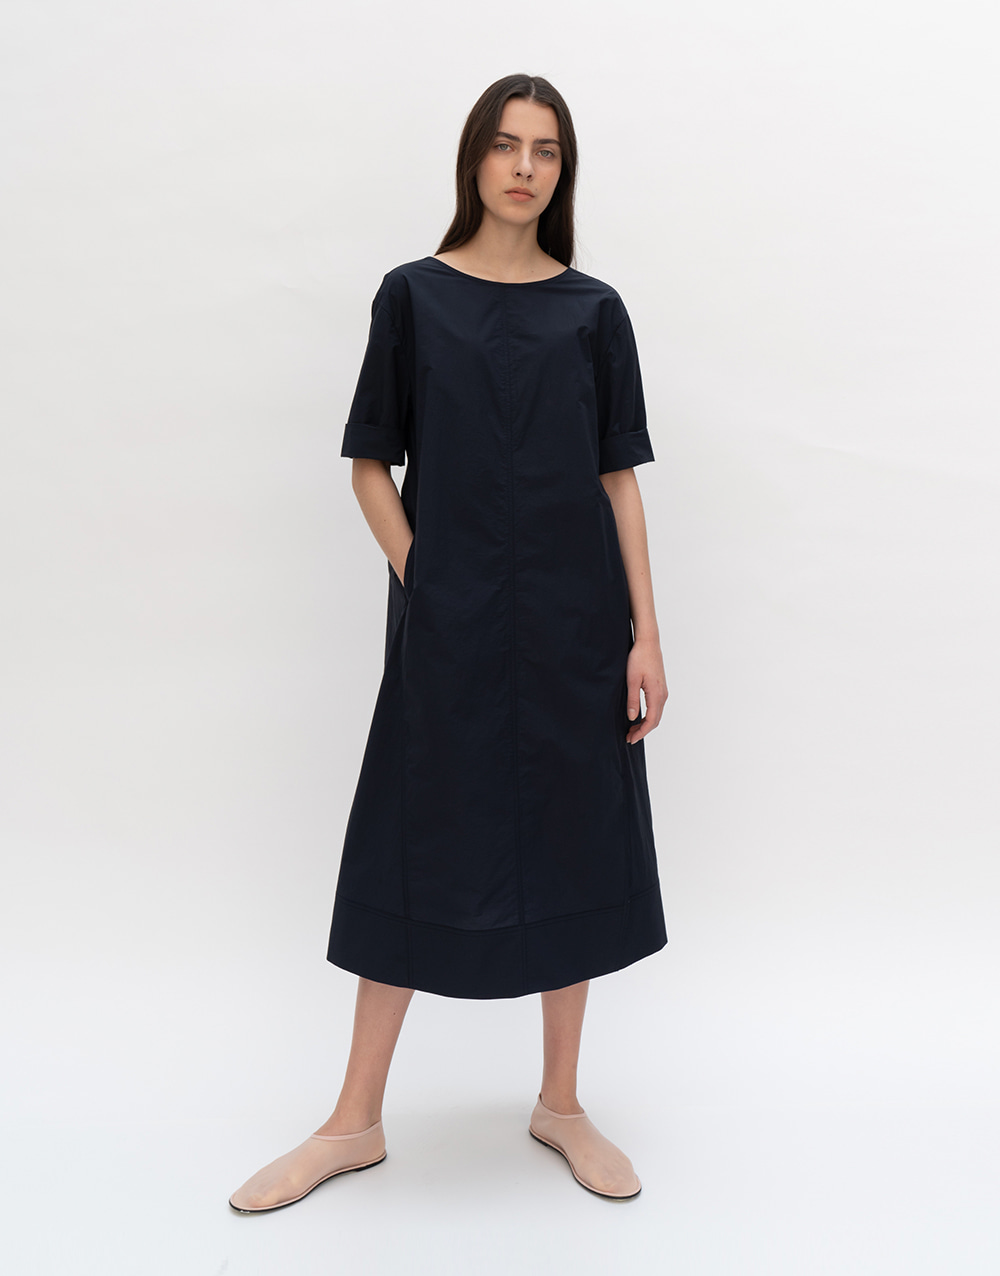 GBH APPAREL ADULT  Summer Backless Dress   DARK NAVY